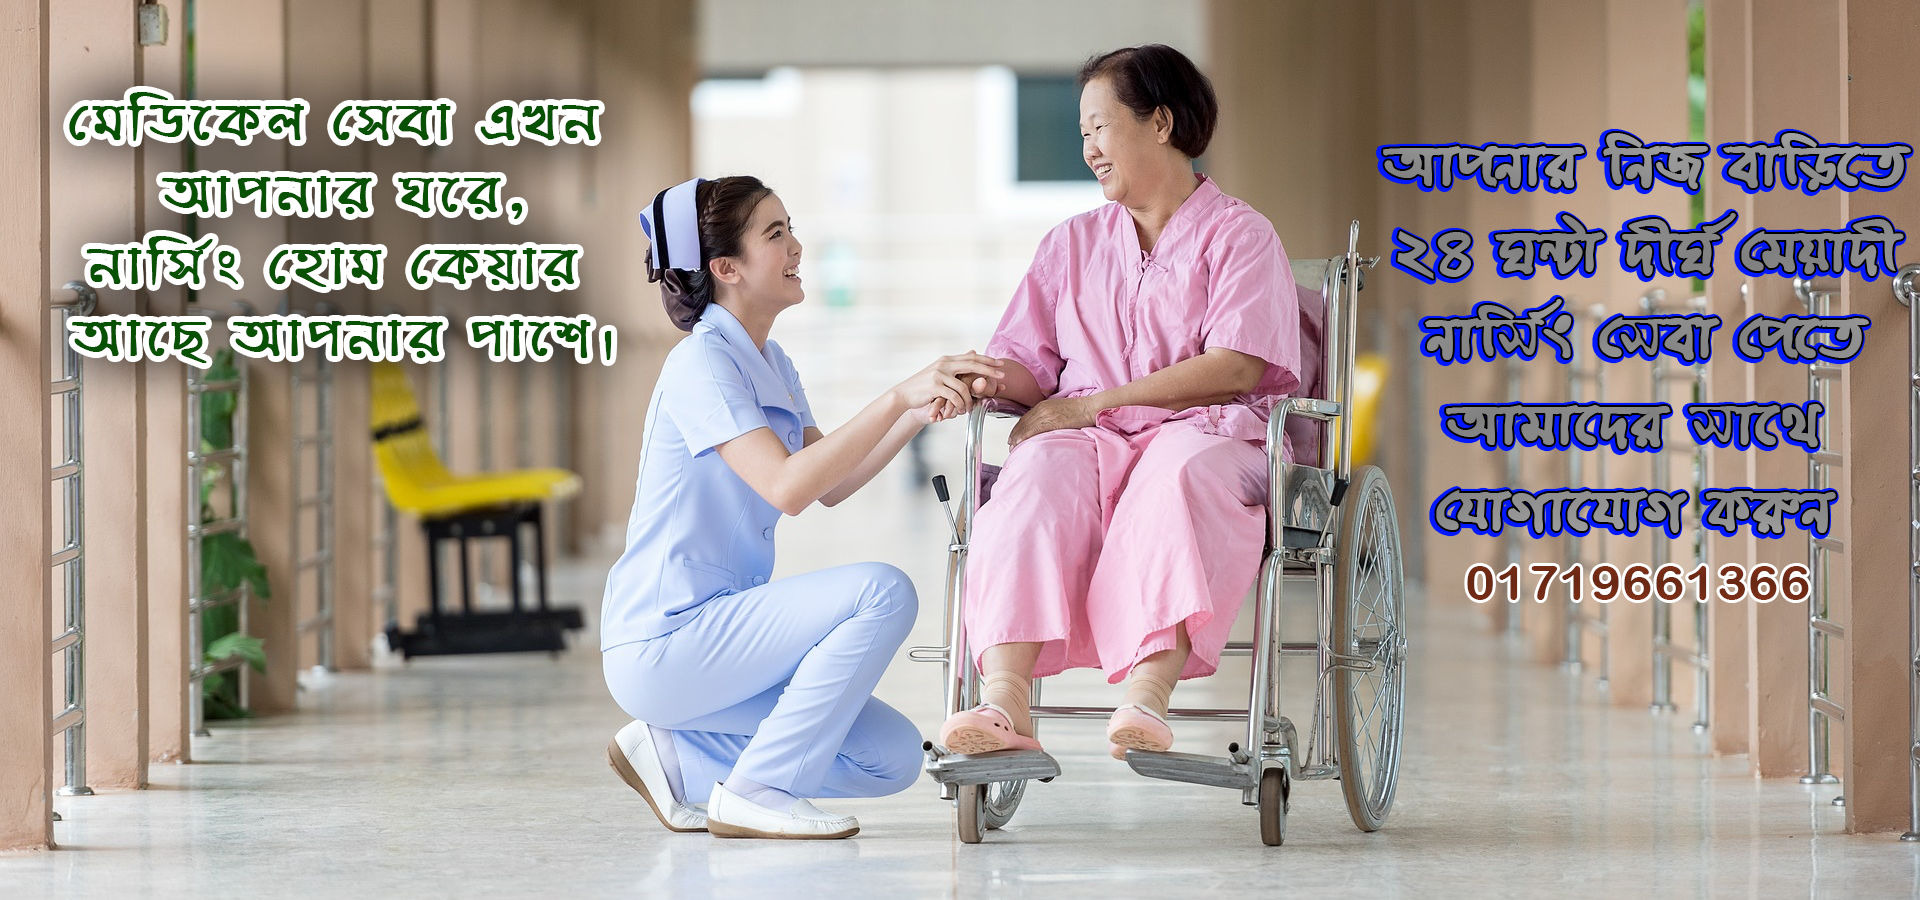 health service in bd Rhstep is a non-government organization (ngo)  ngo and private level health service providers including doctors, nurses, paramedics, fwvs and others.